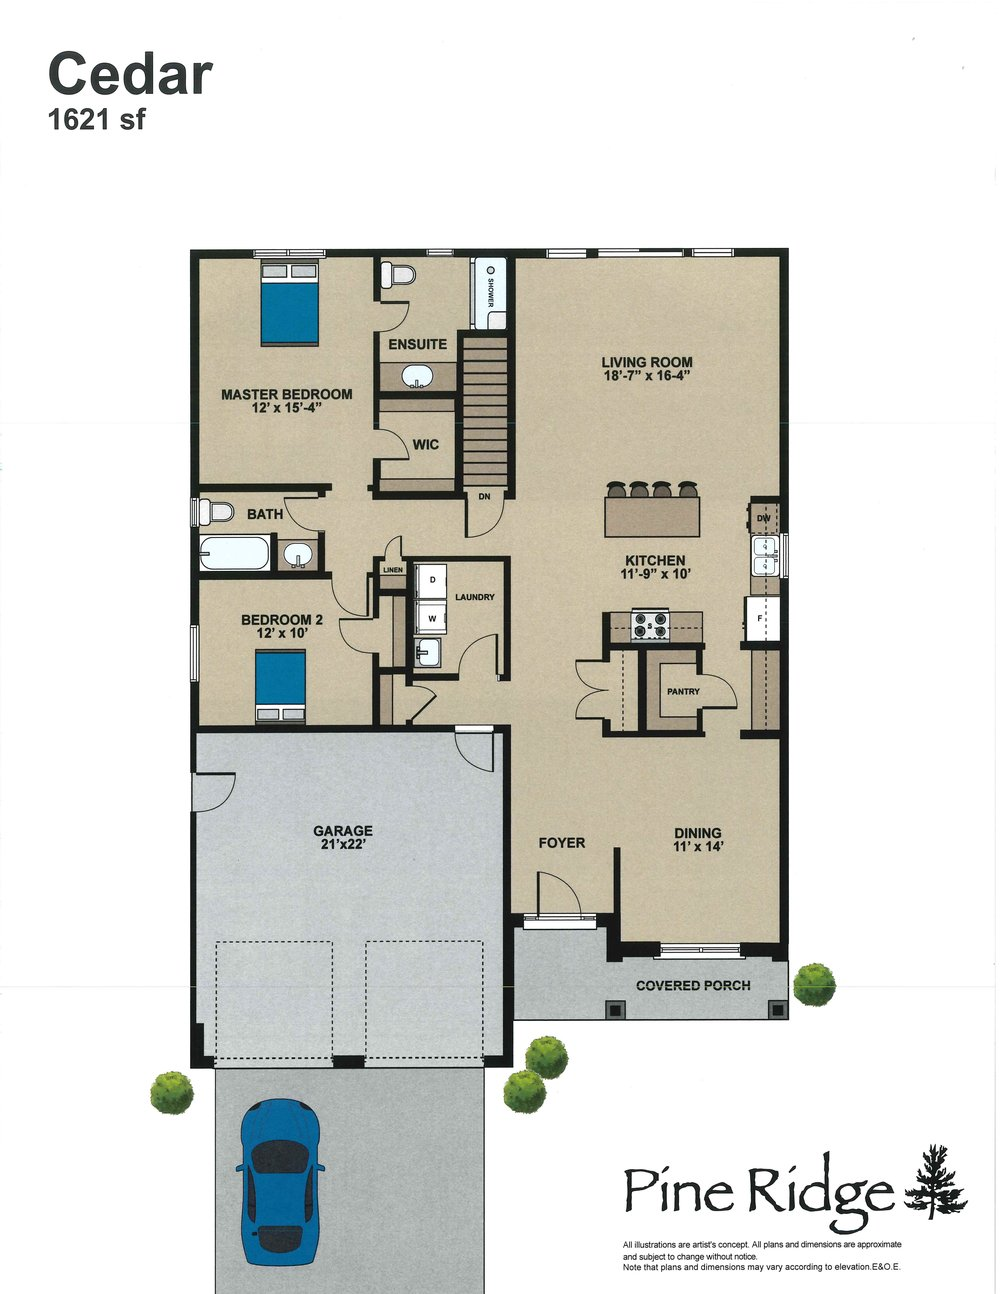 pineridge floorplans 1_Page_4.jpg